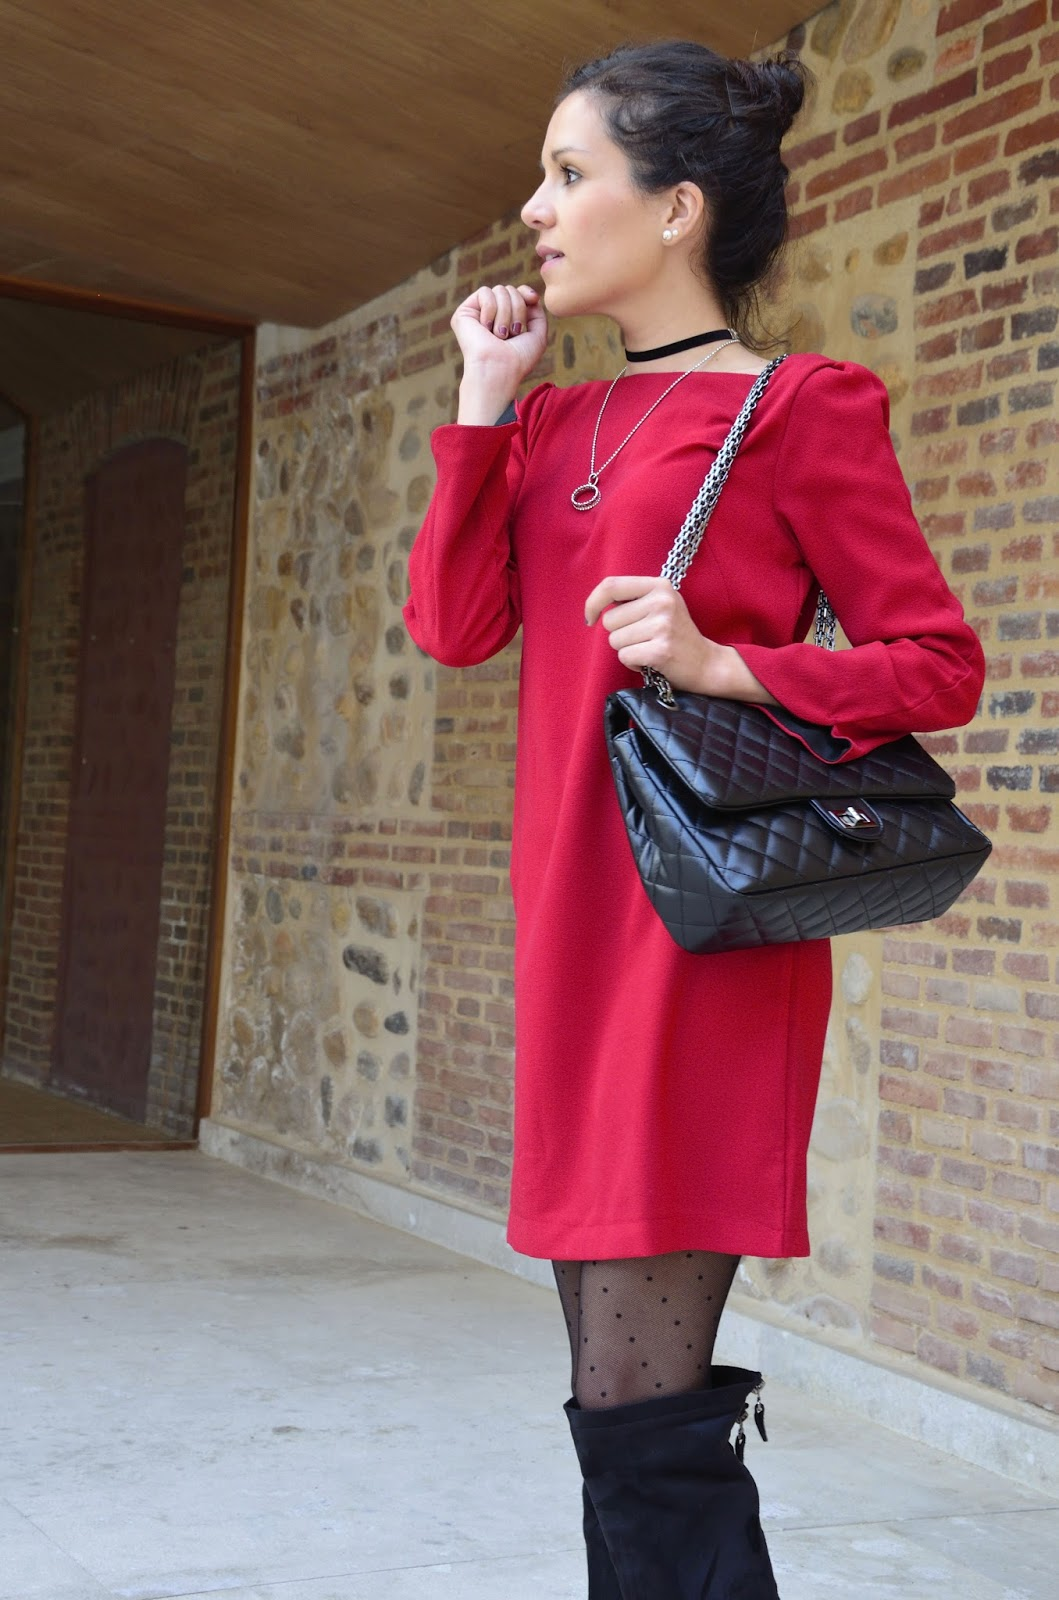 vestido-rojo-red-dress-knee-boots-look-blogger-outfit-trends-gallery